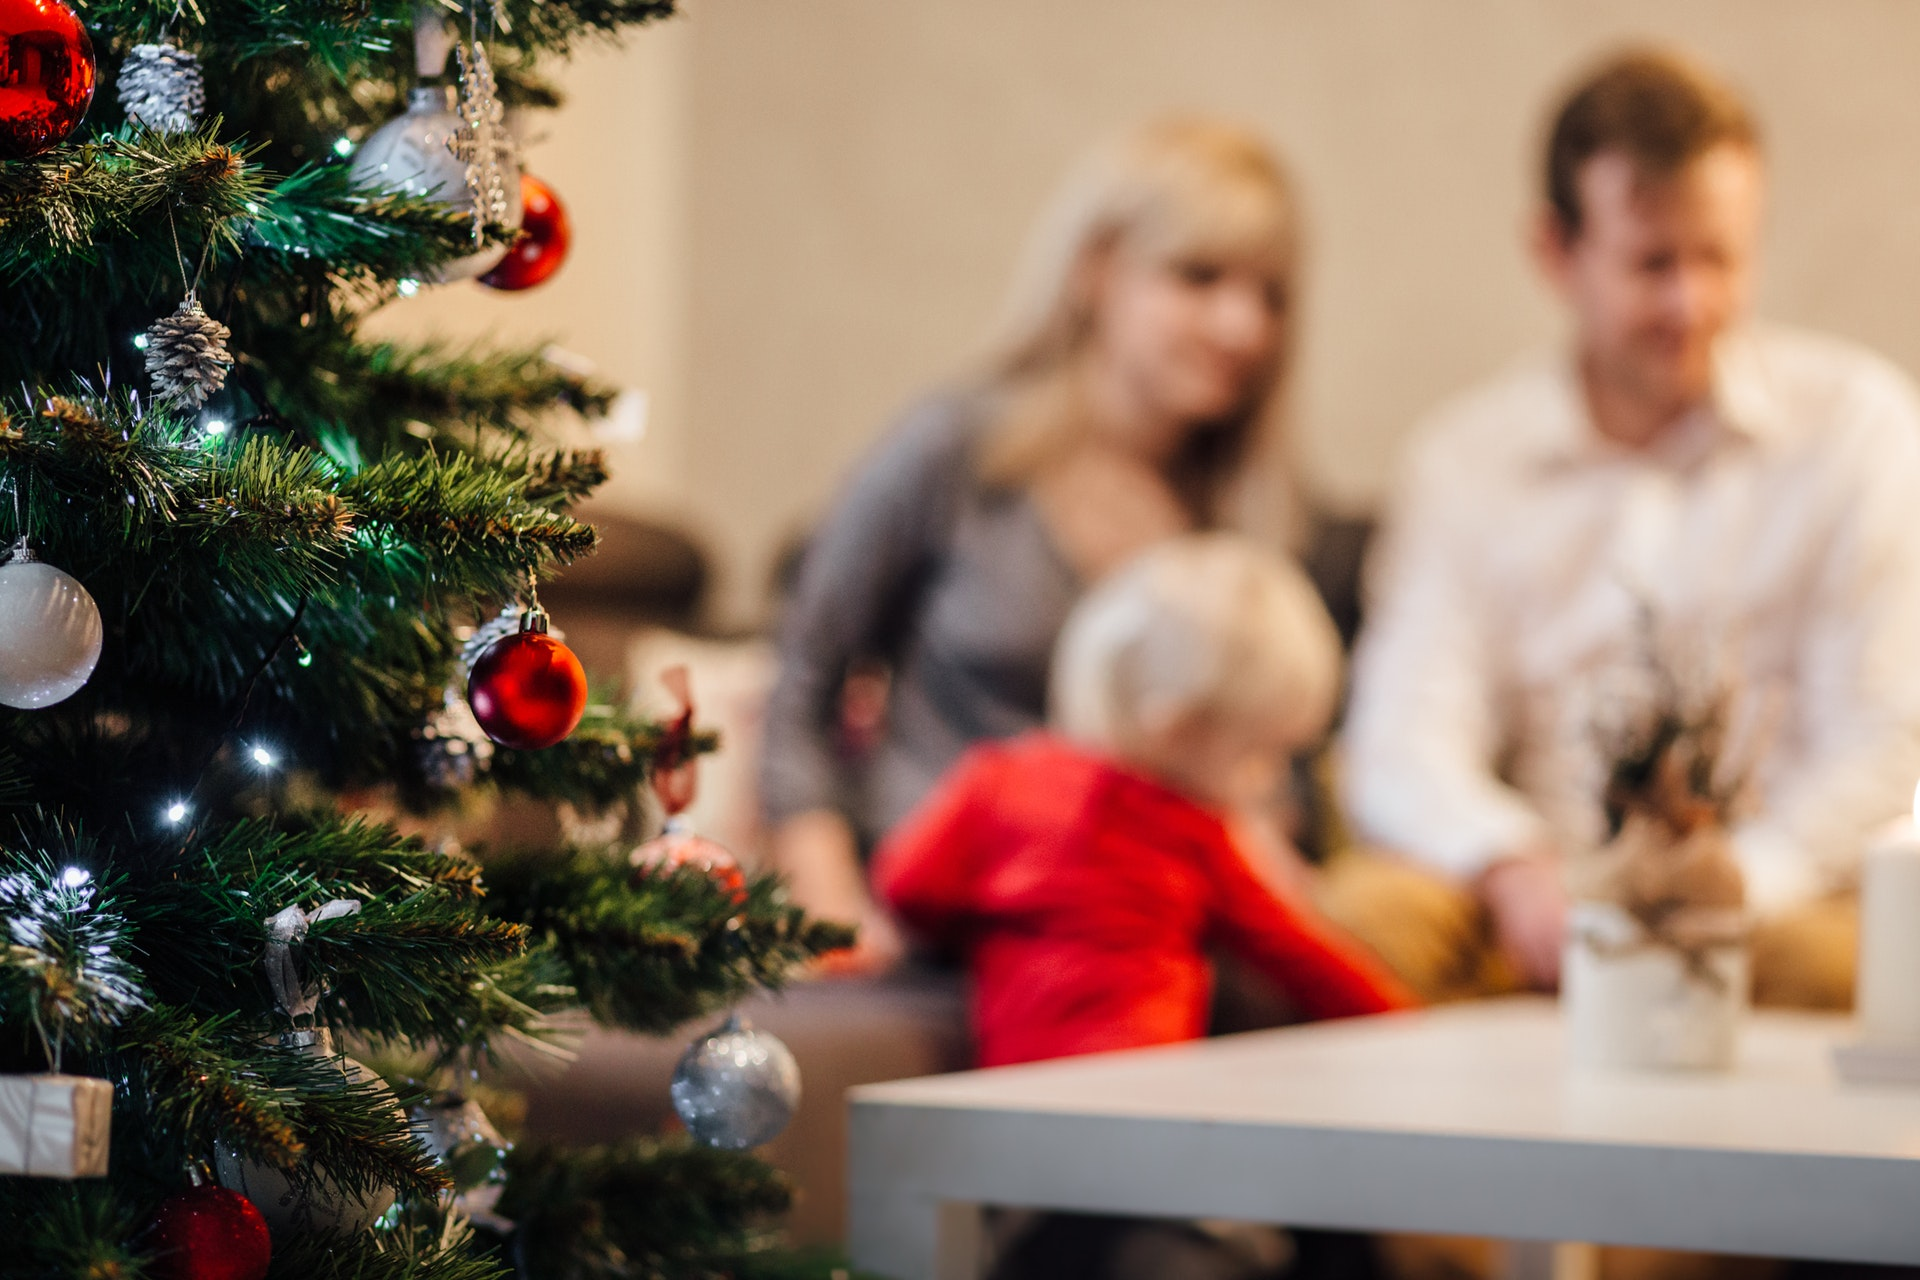 Child Custody: The Benefits of Mediating Holiday Schedules